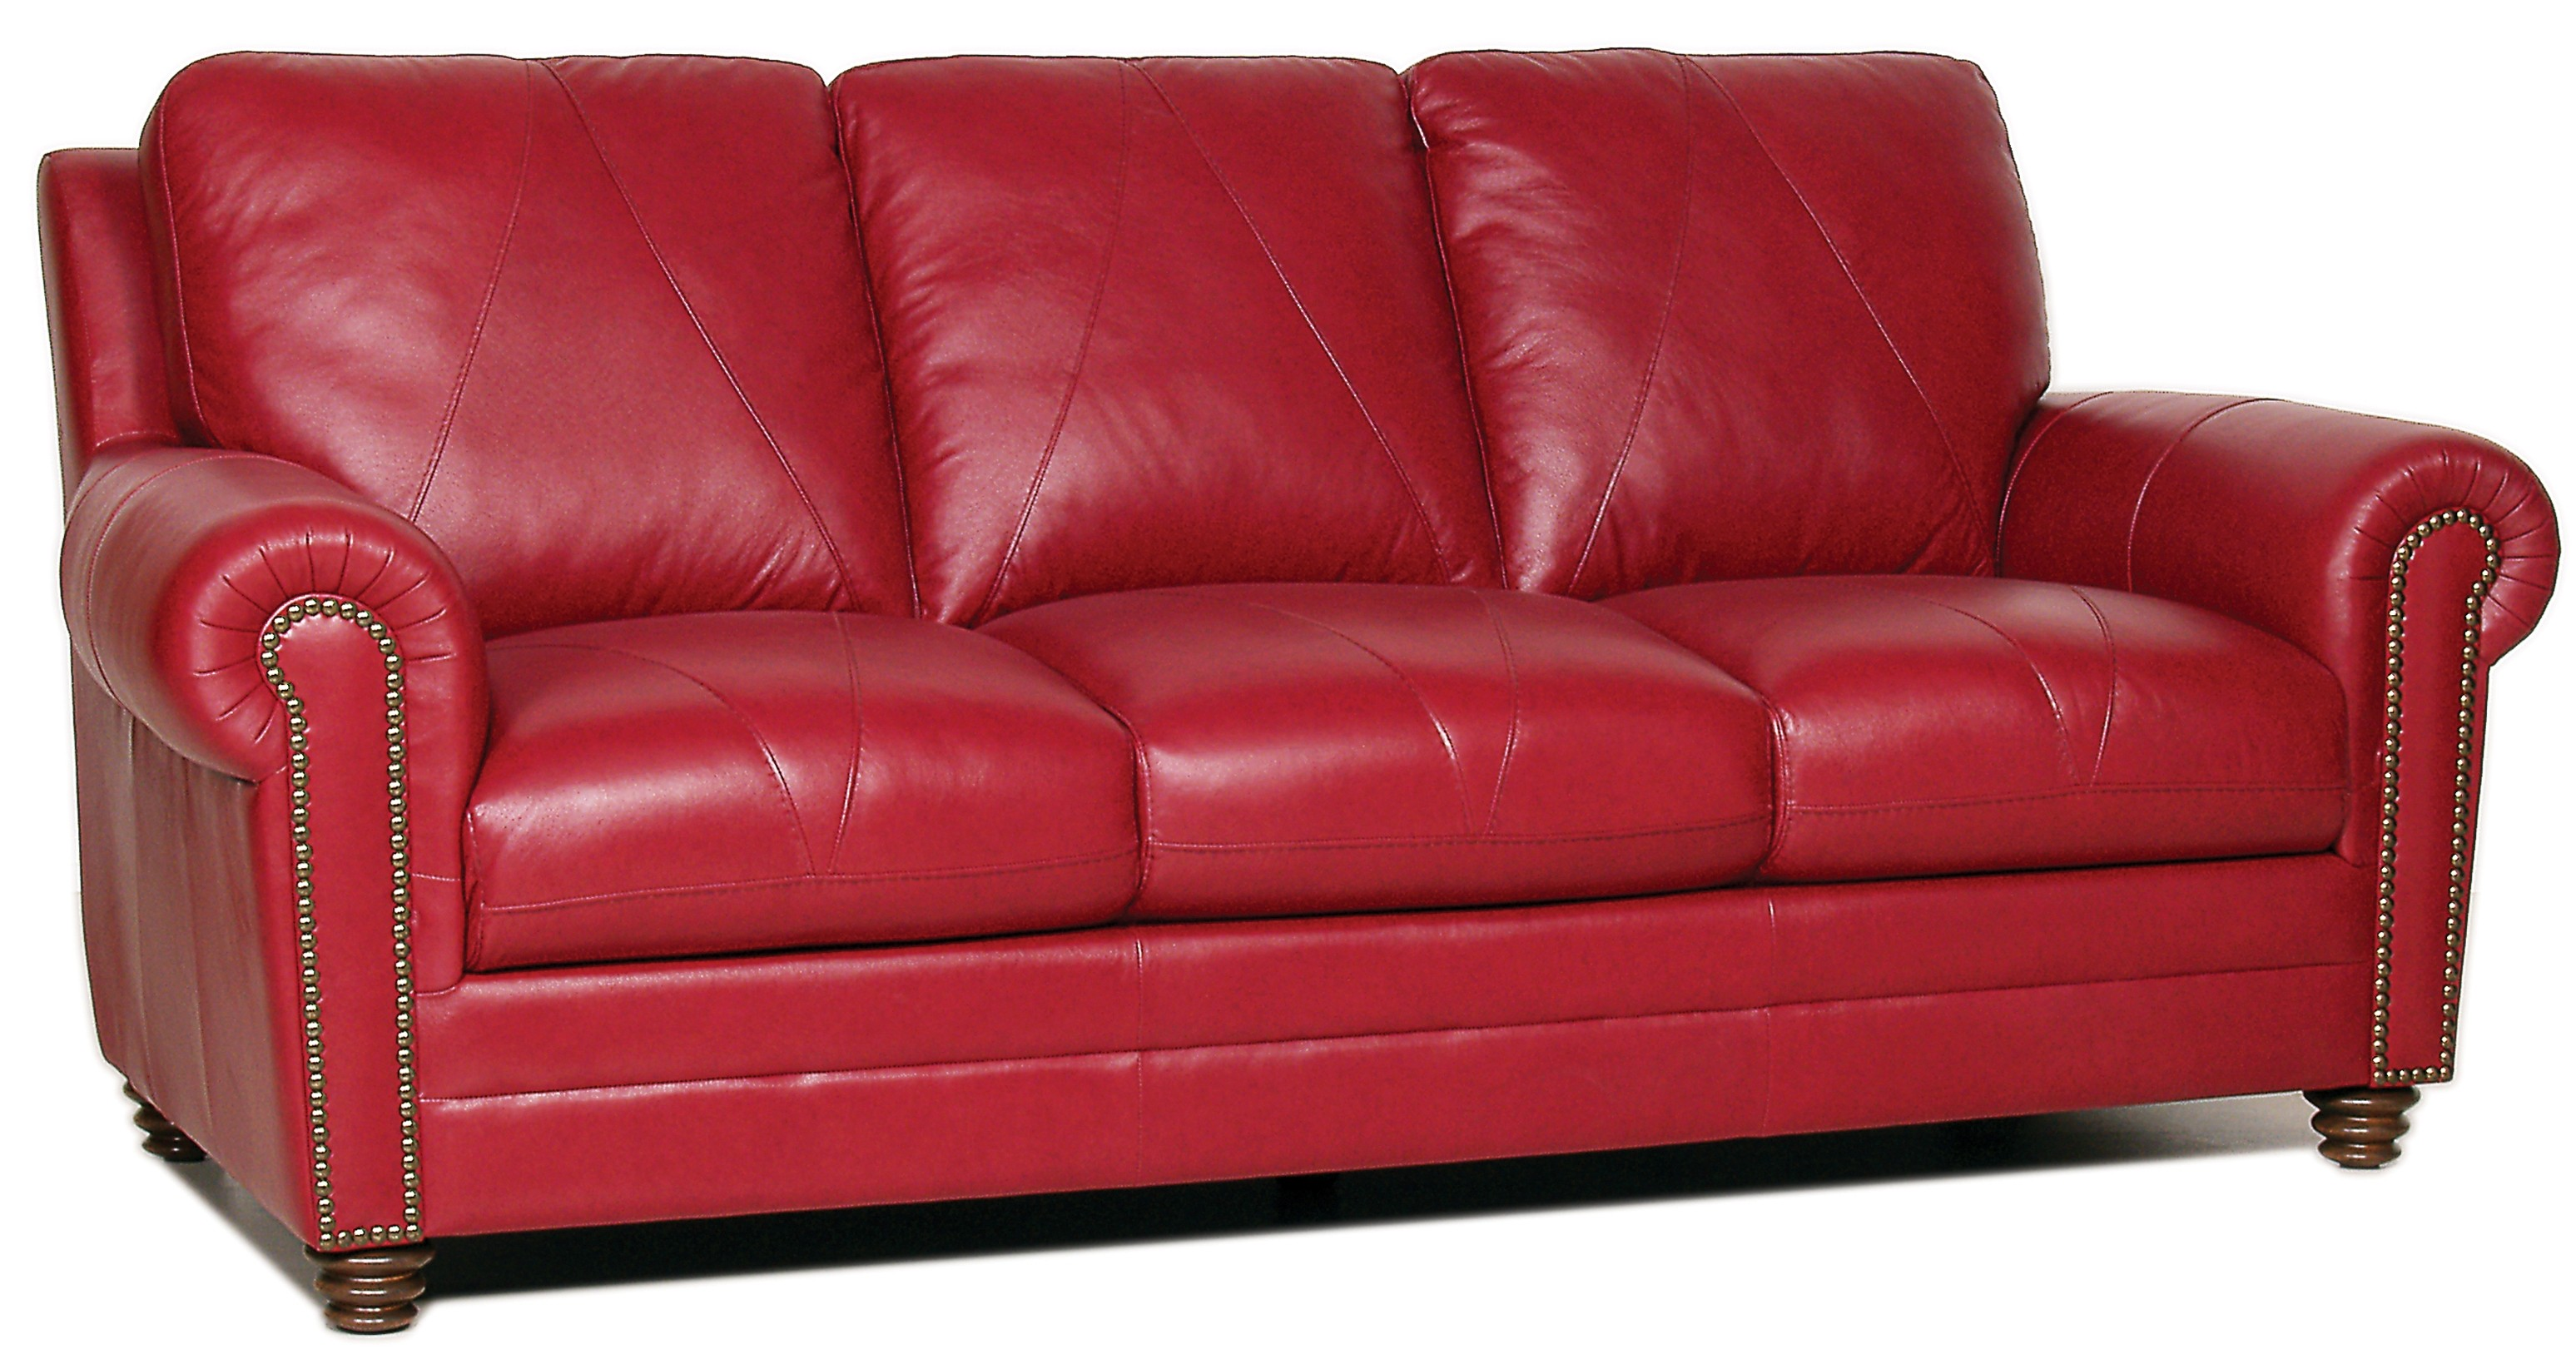 Weston Italian Leather Sofa From Luke Leather Coleman Furniture